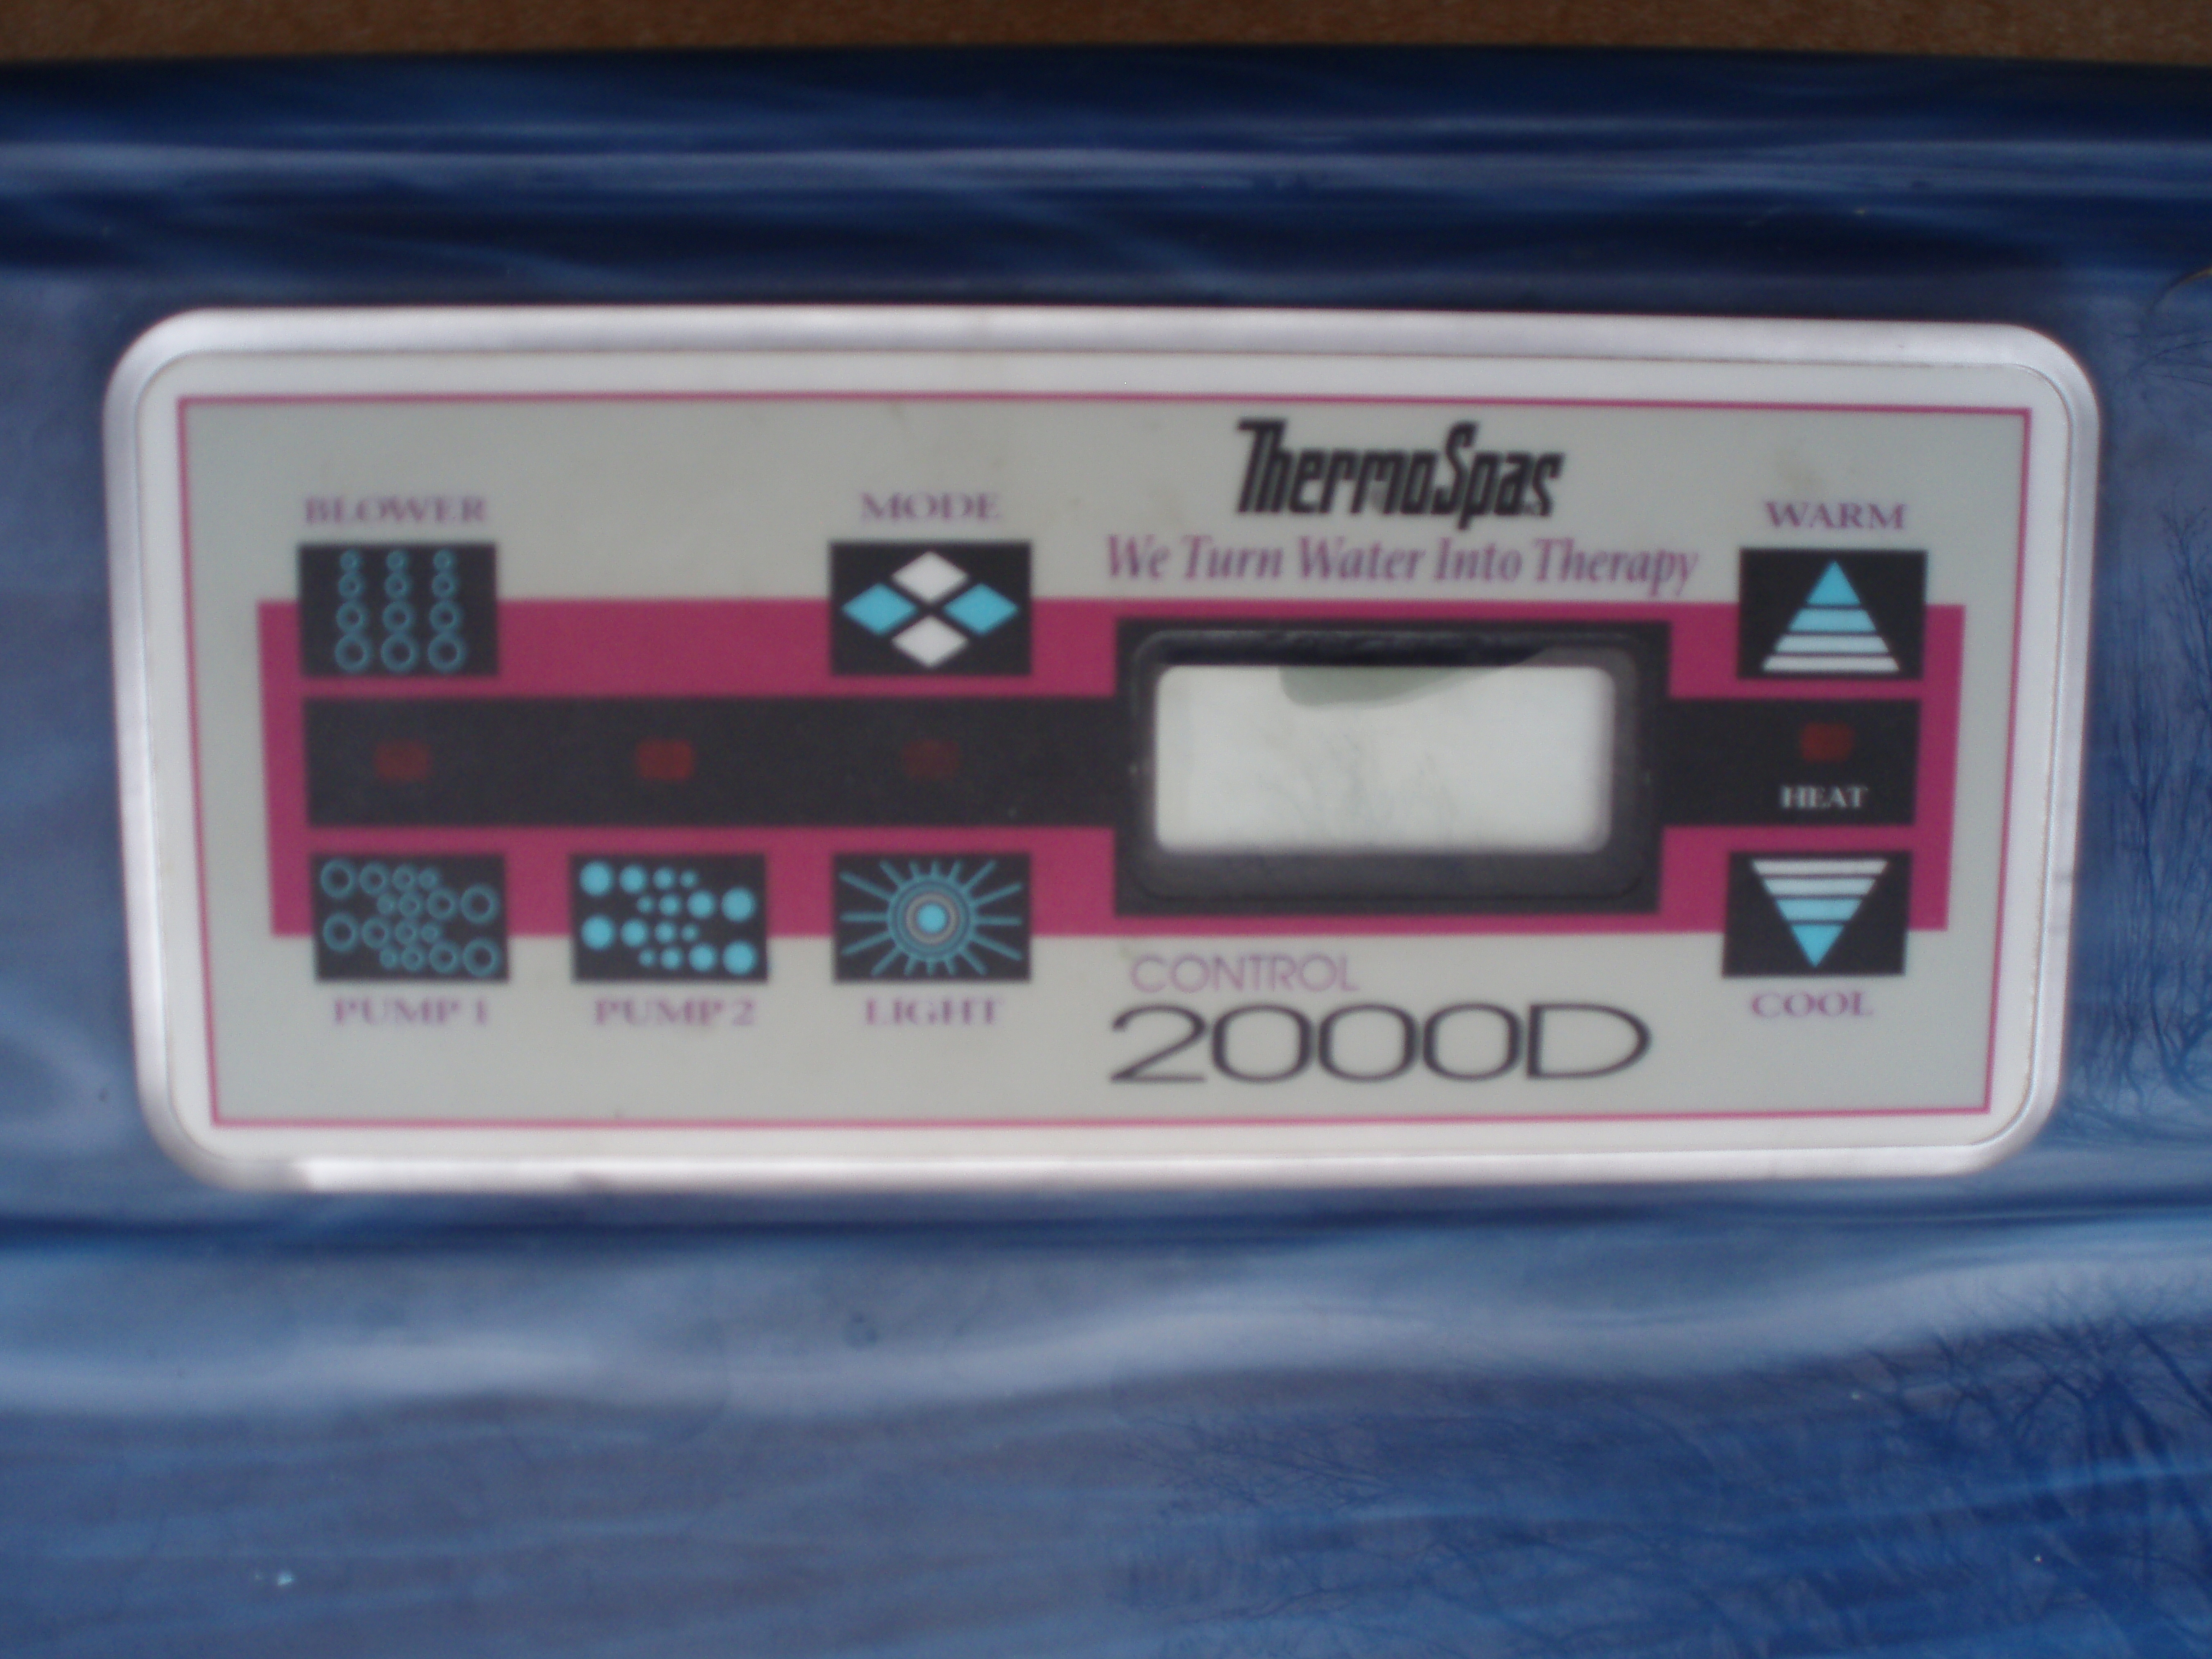 hi i a thermospa 2000d the pumps are running continuously